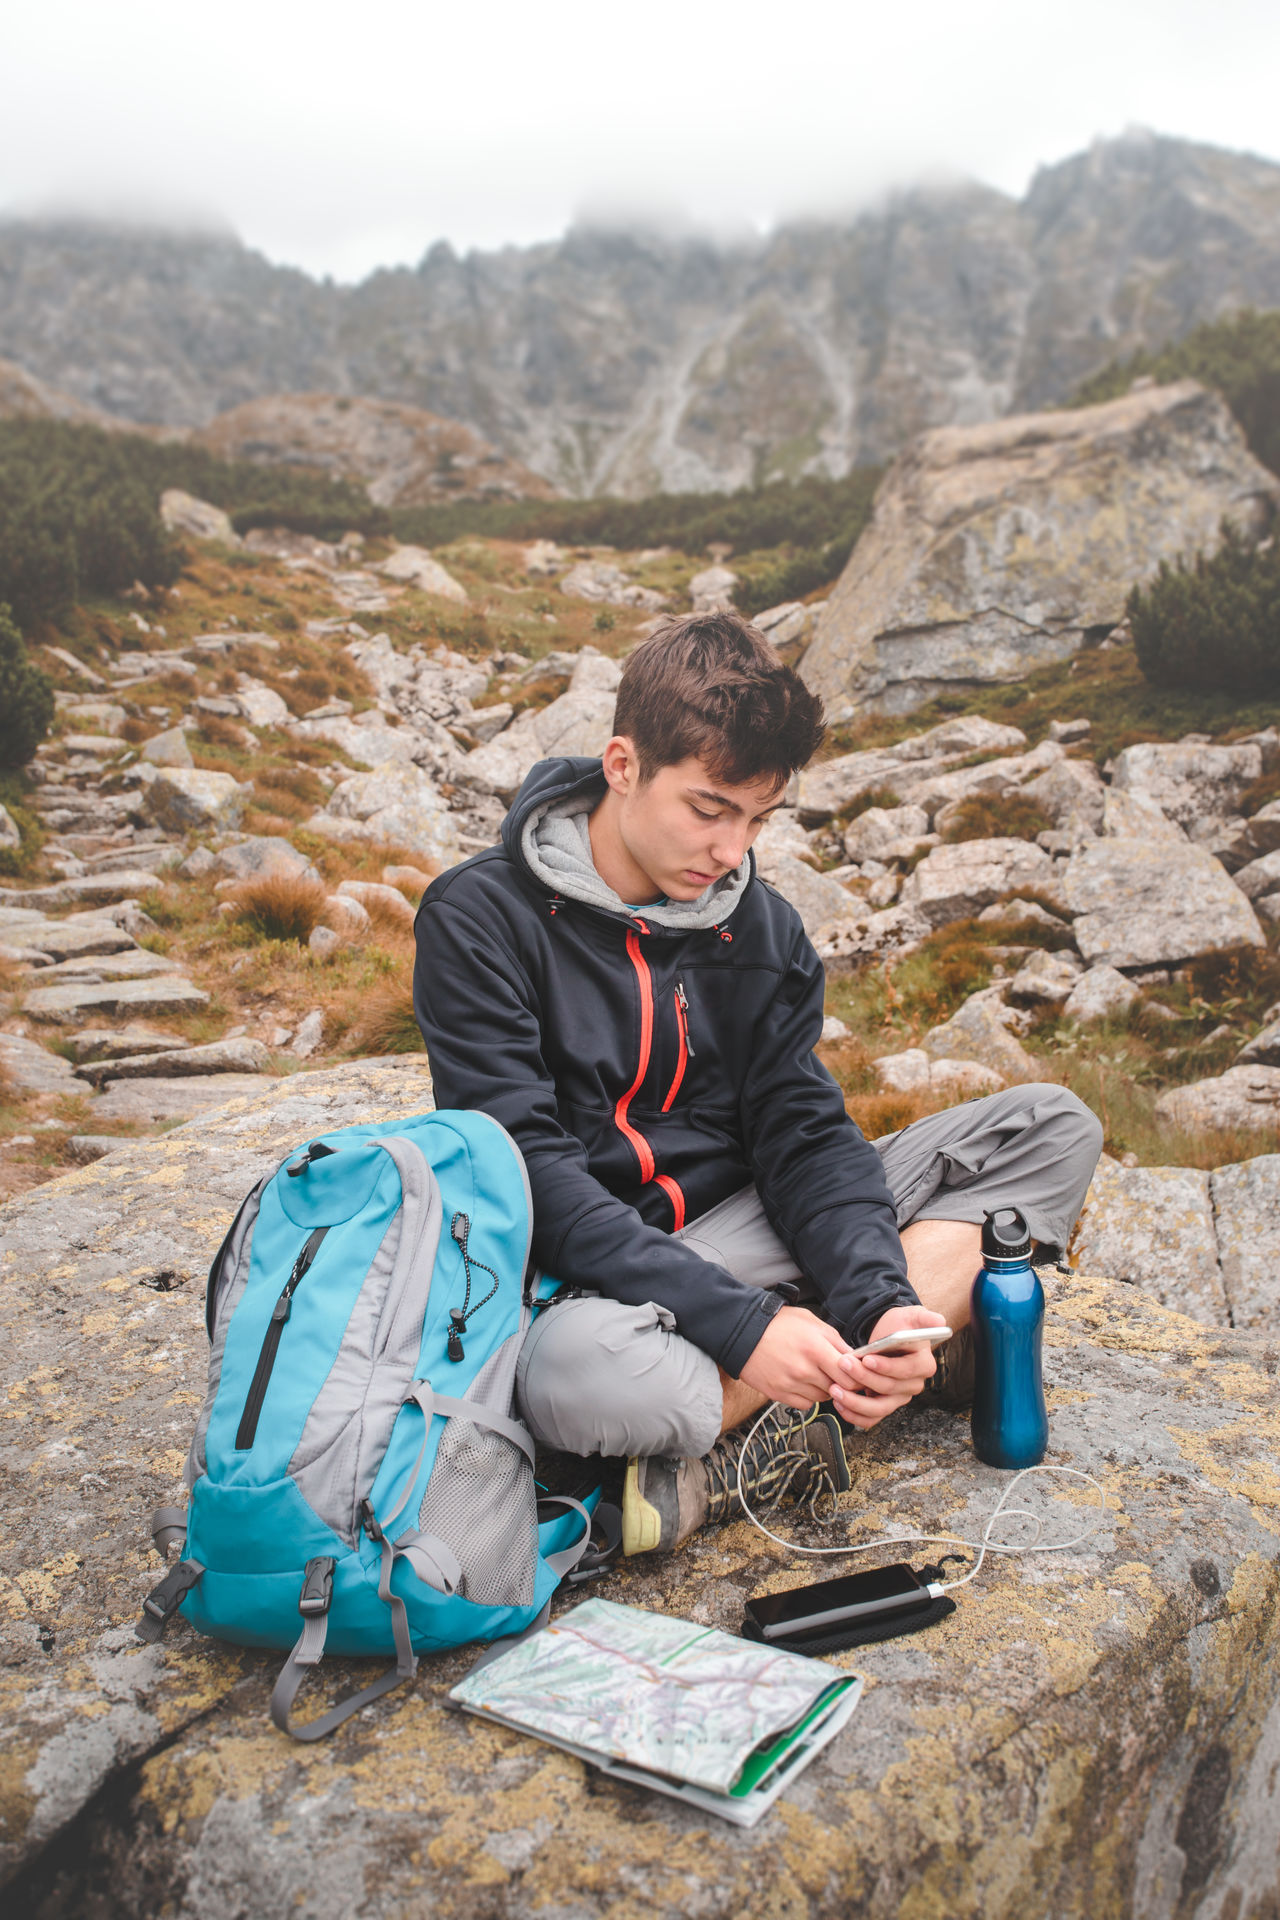 Beautiful stock photos of handy, mountain, one person, one man only, adults only